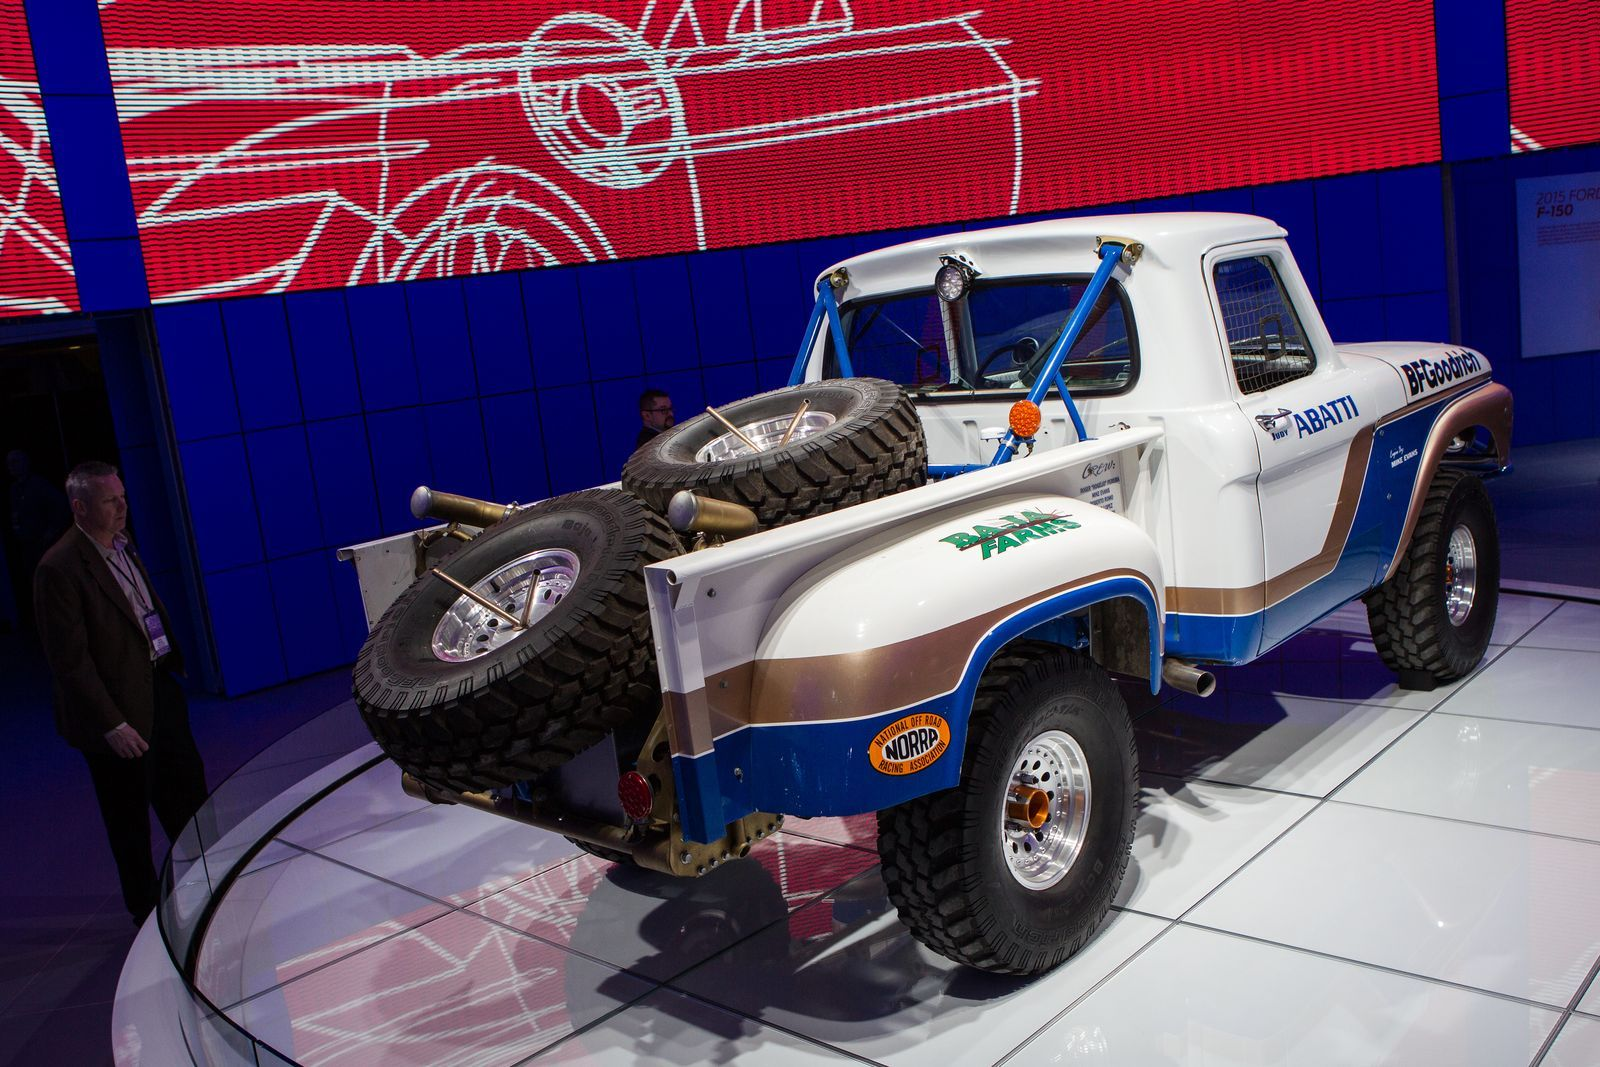 Exfarm truck is the baddest pickup at the Detroit show in